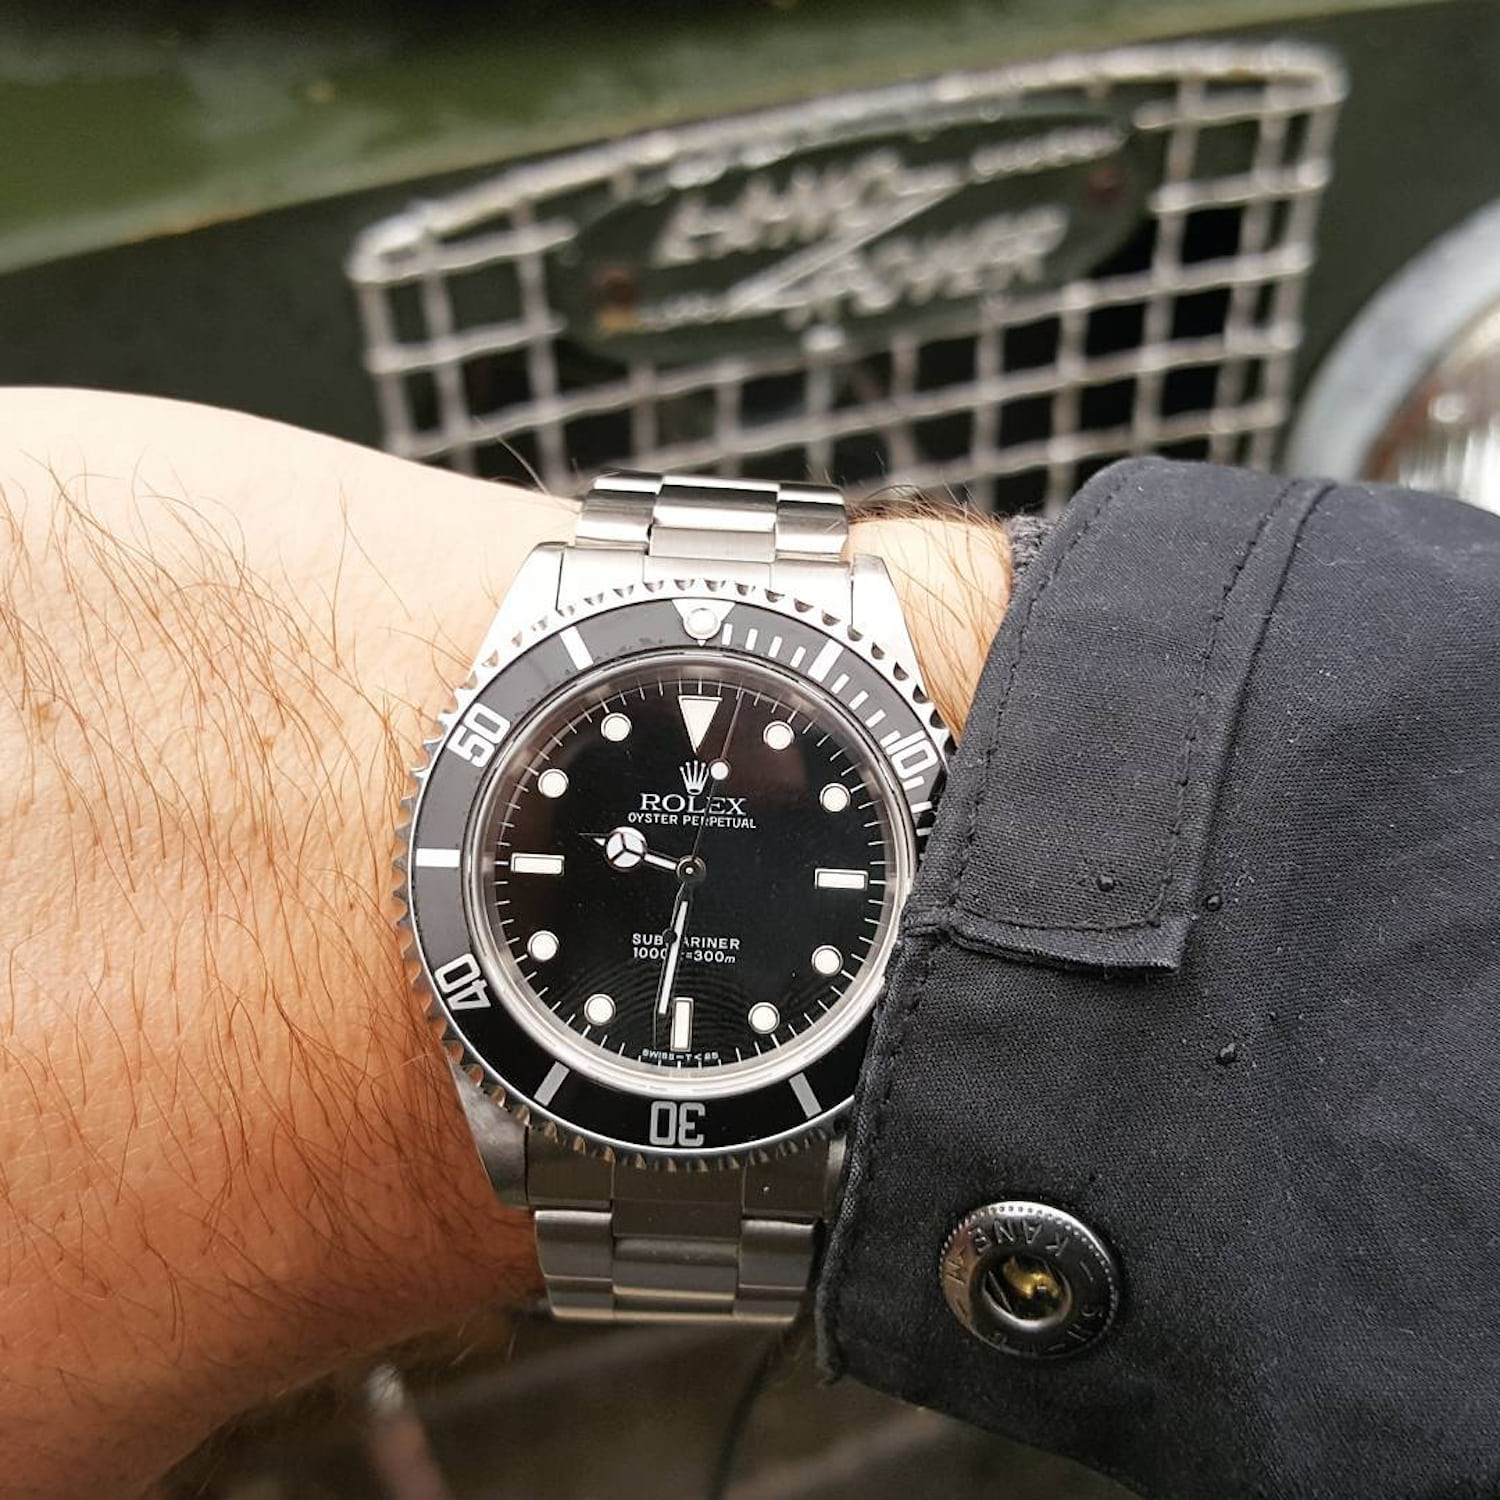 Rolex submariner.jpg?ixlib=rails 1.1